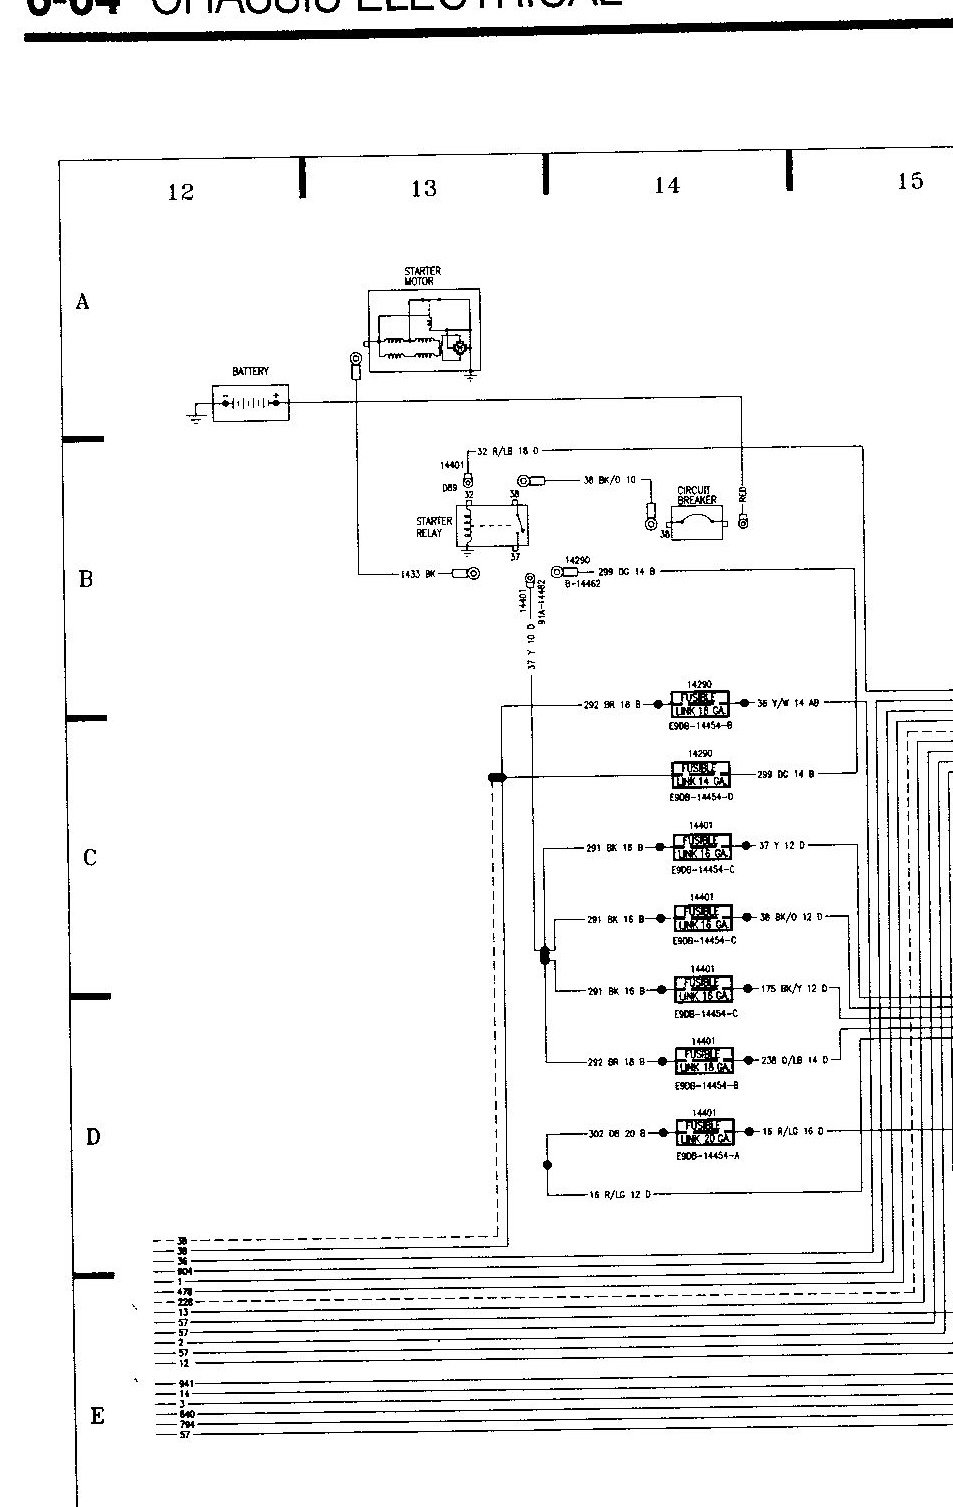 Obd1 Wiring Diagram 1990 Ford Mustang Library Starter Solenoid Lx 50 Problems